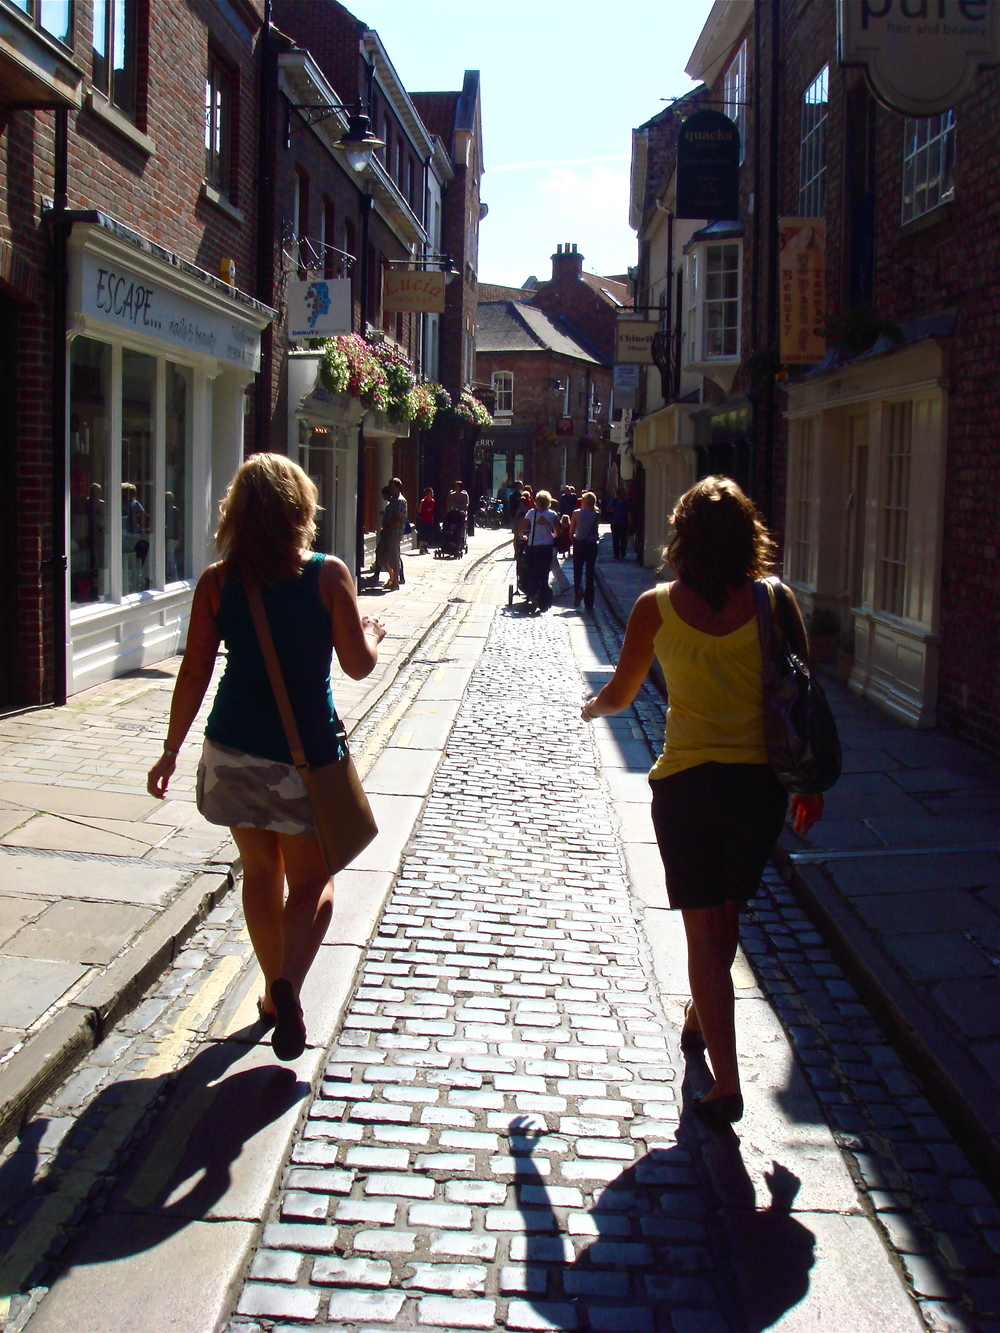 Exploring the historical city of York, UK